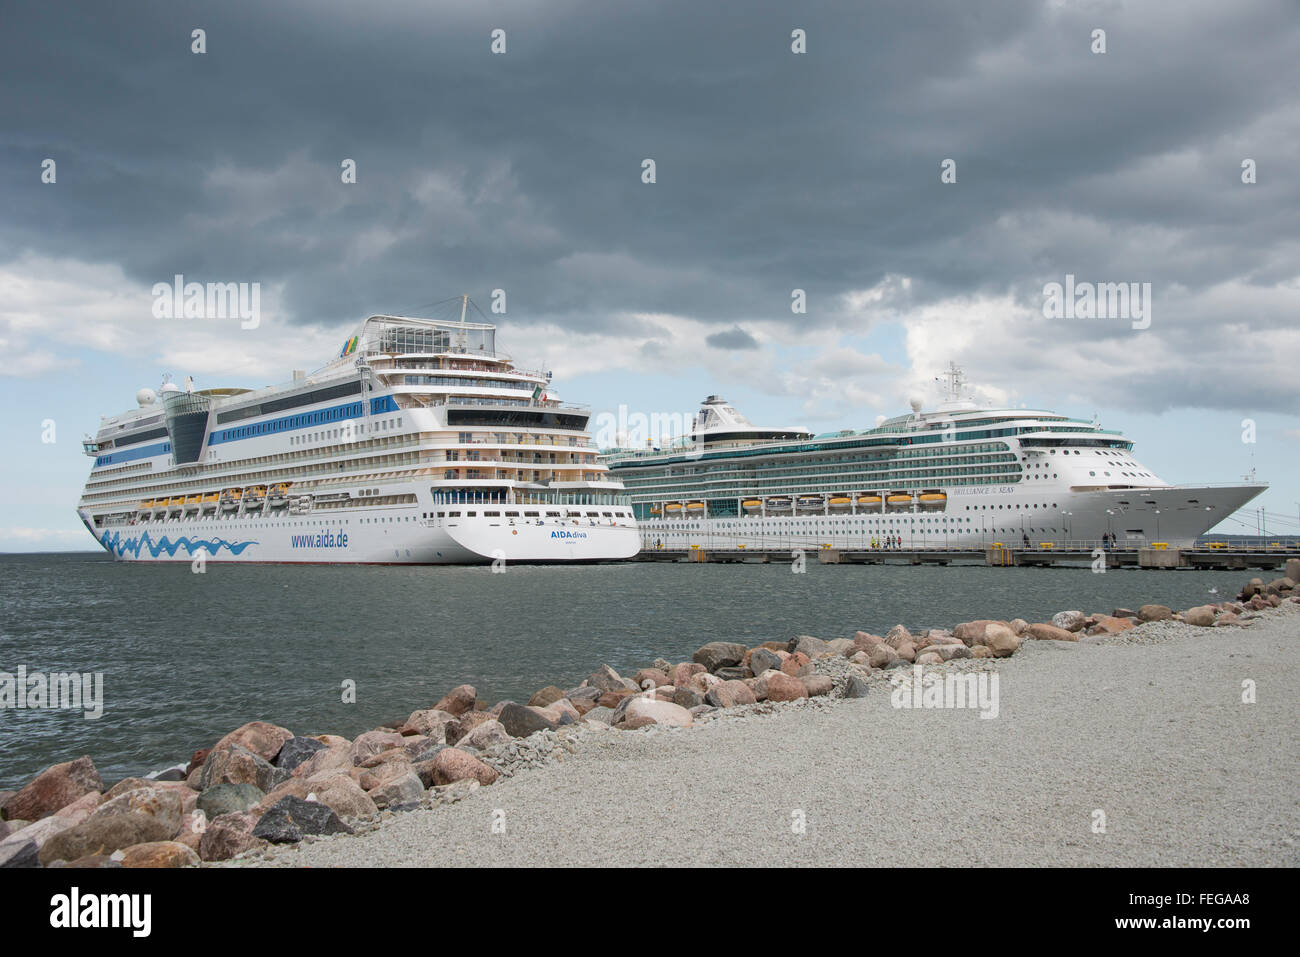 AIDA Diva & Royal Caribbean Brilliance of the Seas, cruise ship, Port of Tallinn, Tallinn, Harju County, Republic Stock Photo